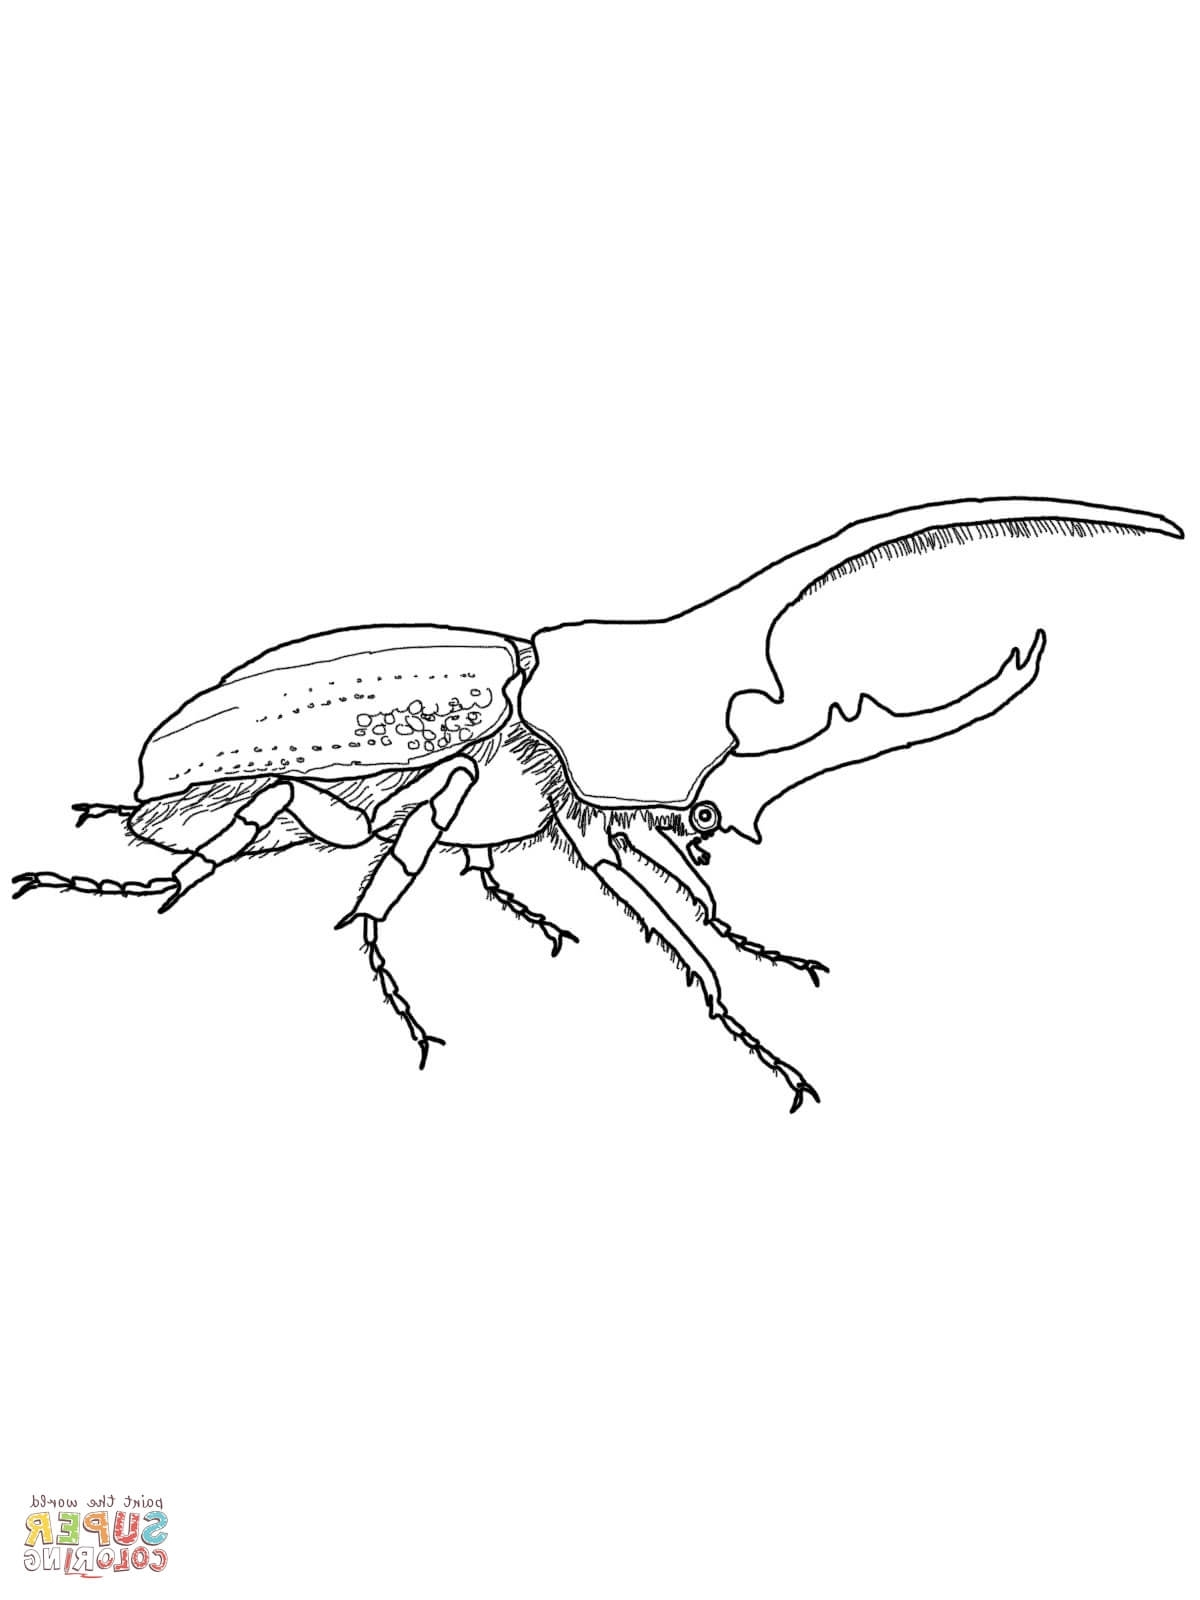 rhinoceros beetle coloring pages - photo#10